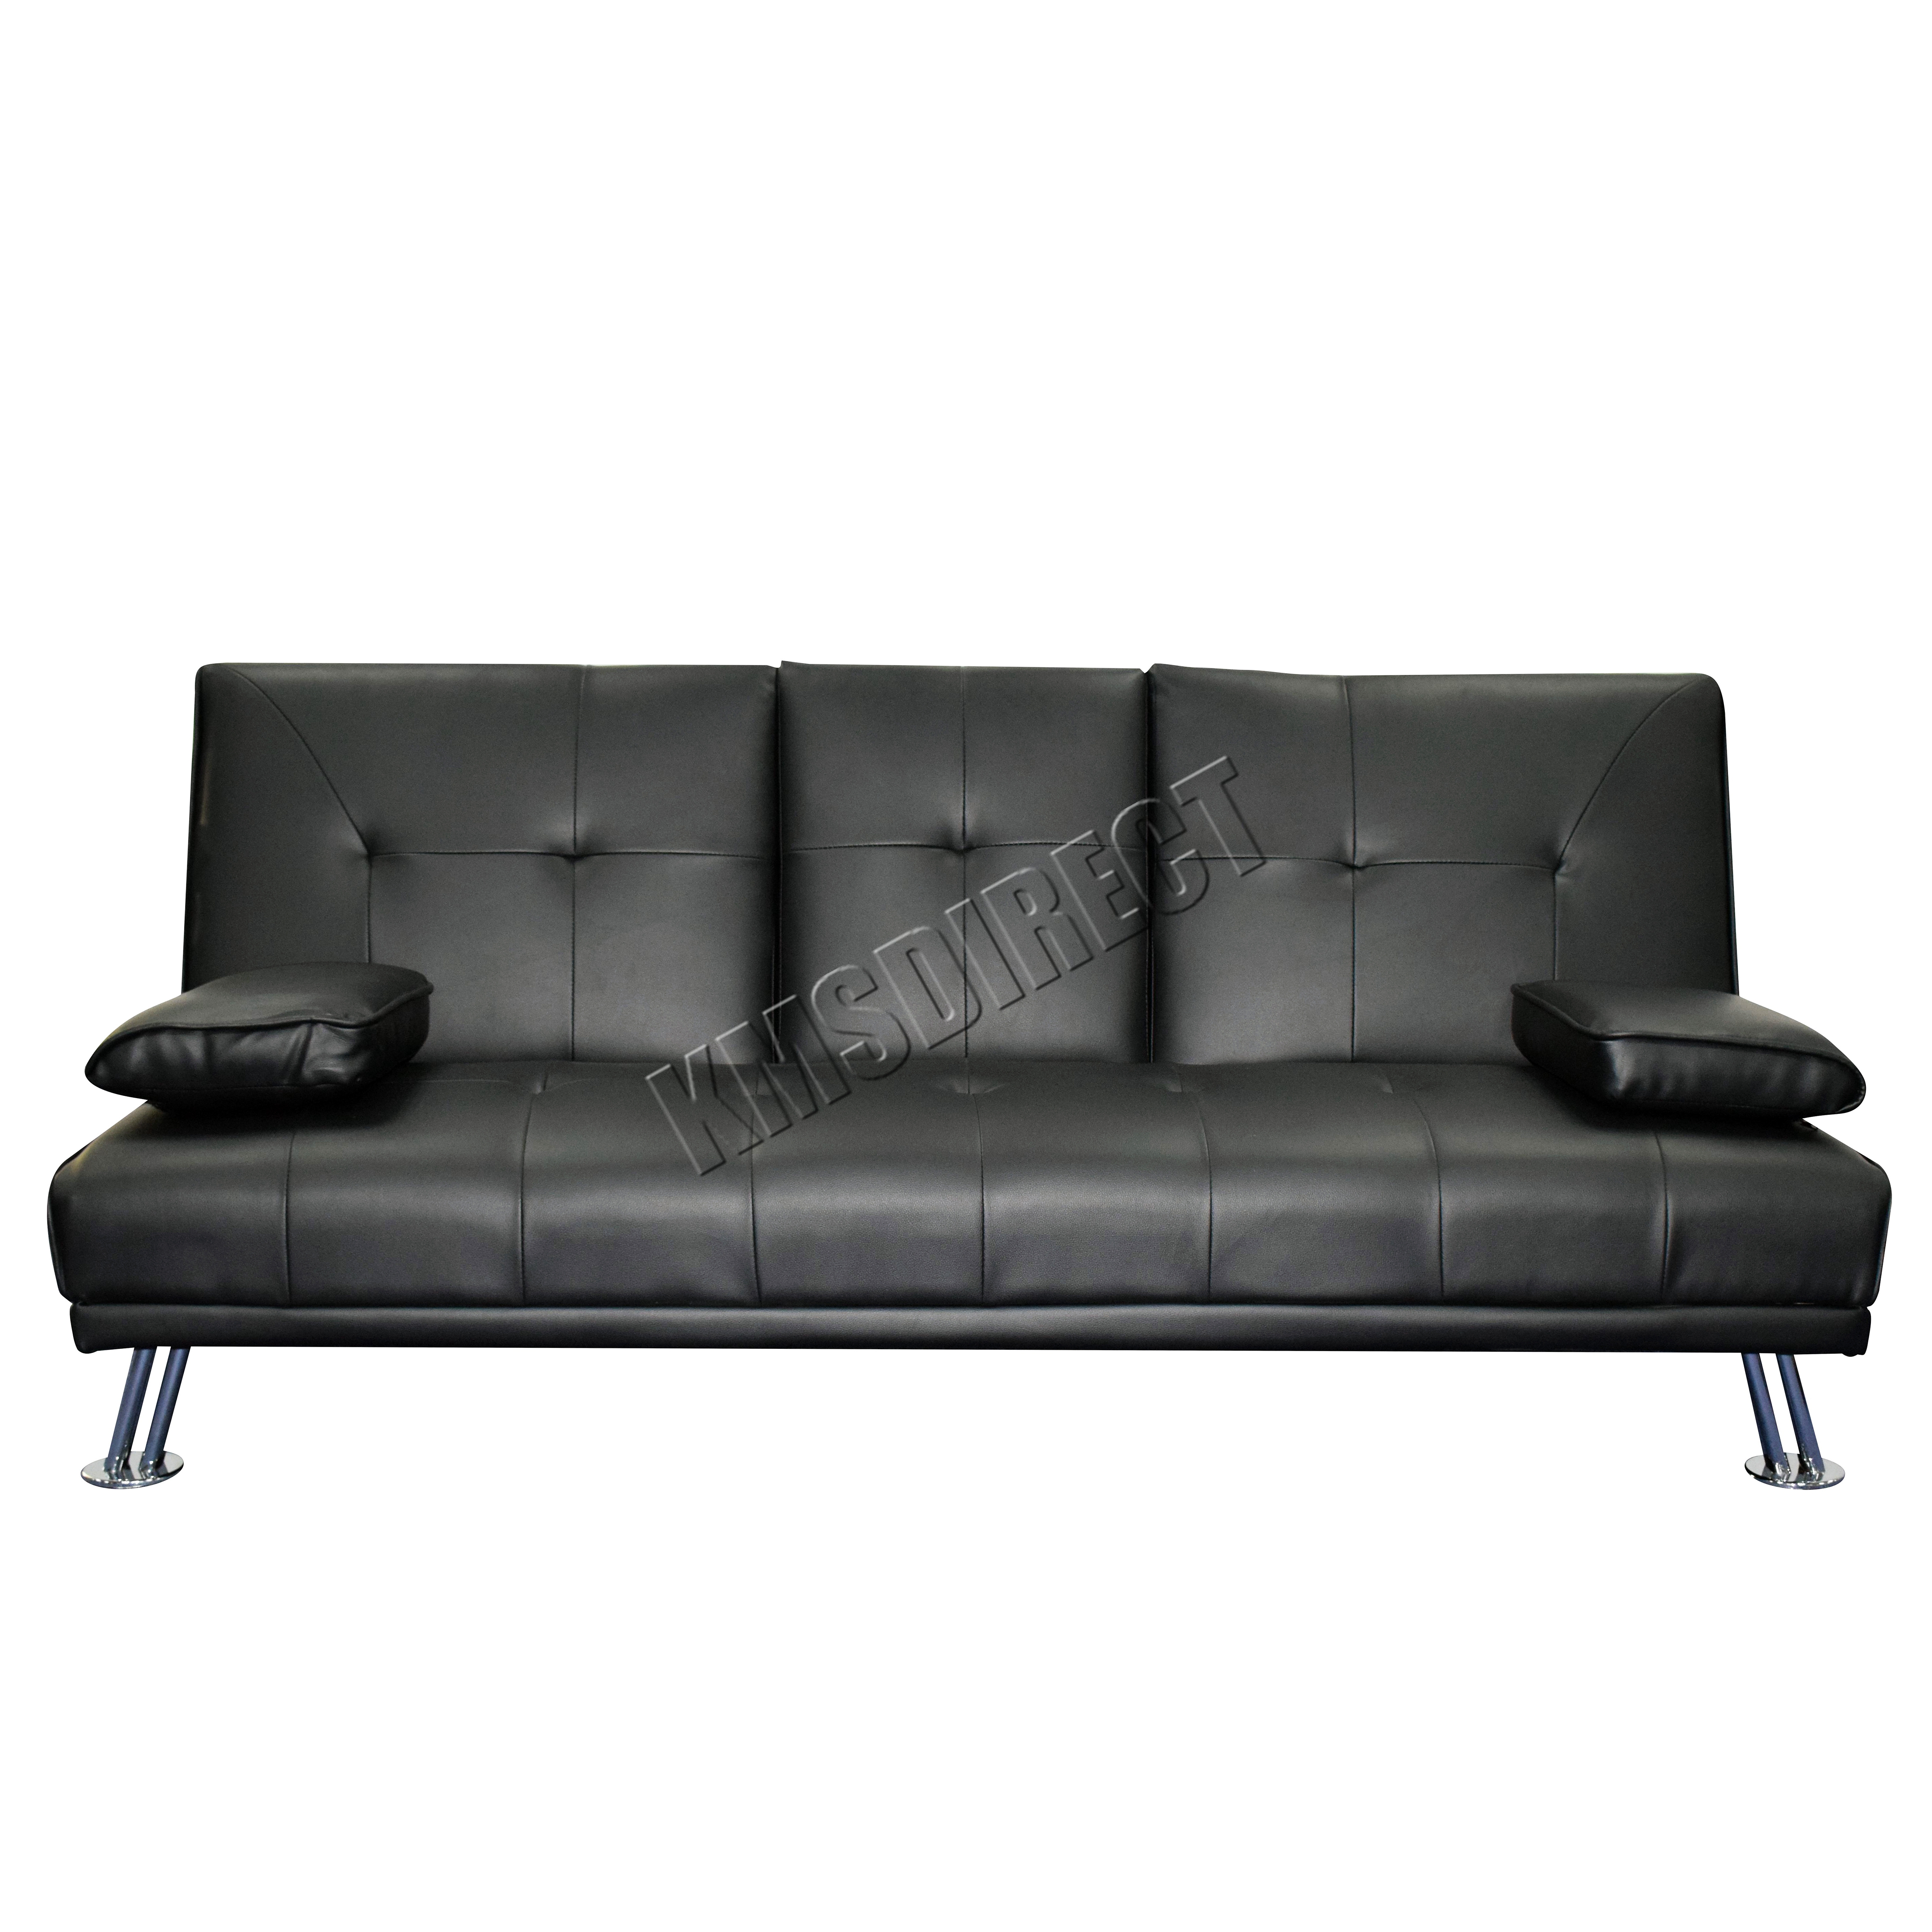 Black Leather Sofa Bed Ebay: Faux Leather Manhattan Sofa Bed Recliner 3 Seater Modern